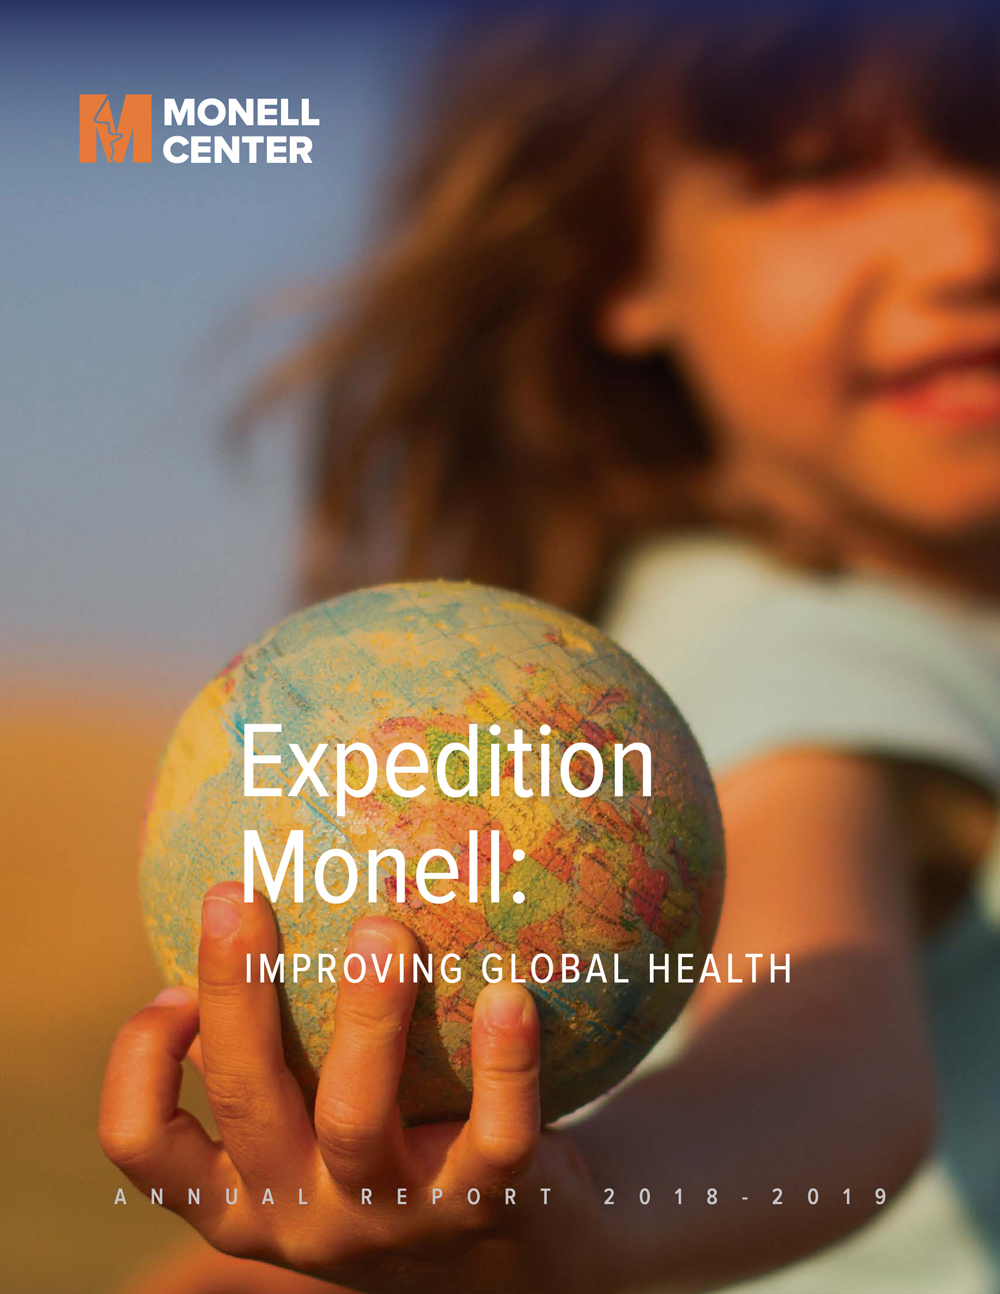 Monell's 2018-2019 Annual Report